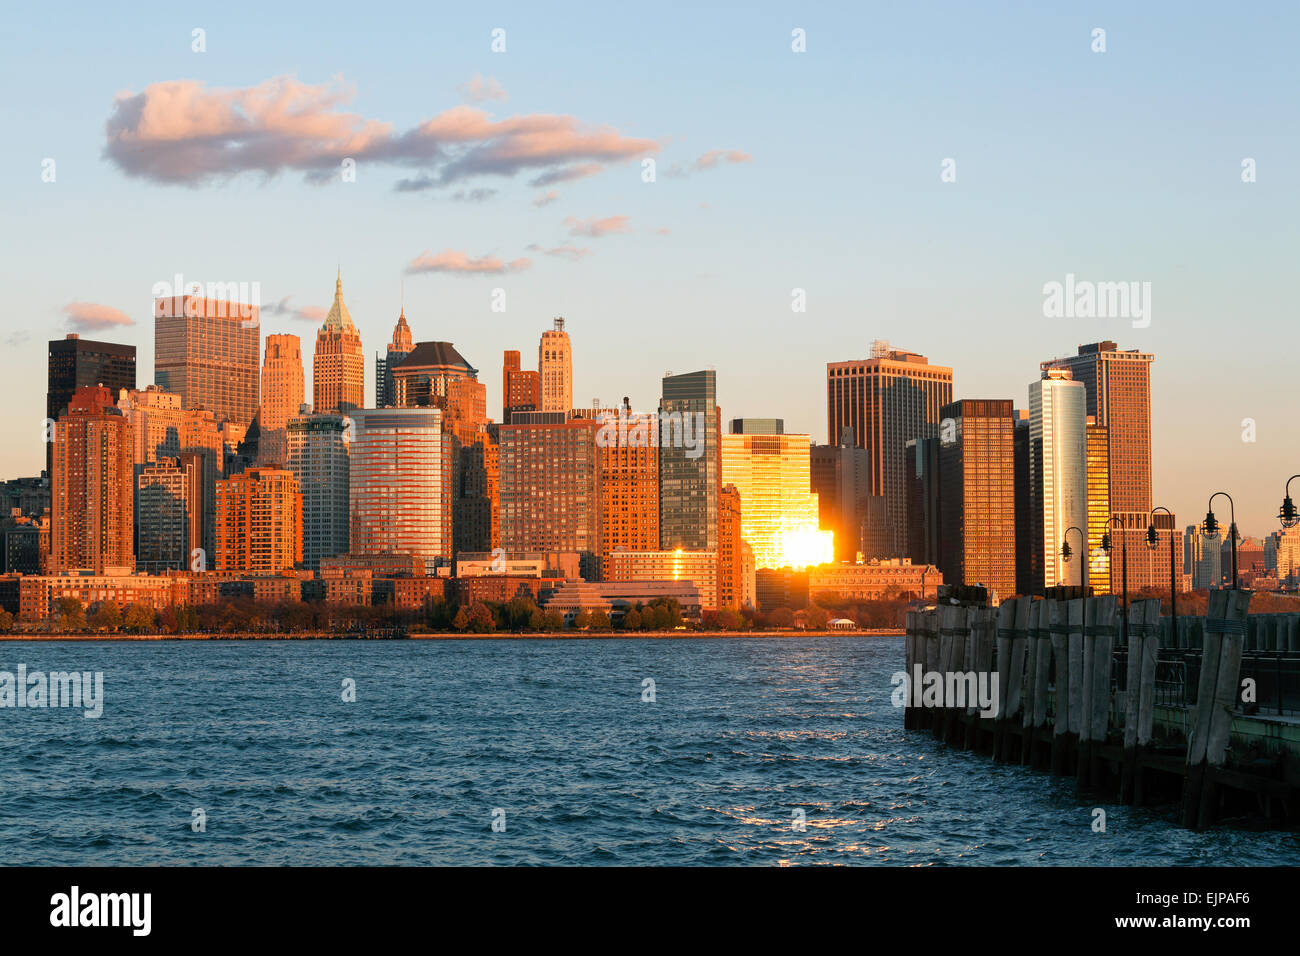 Downtown Manhattan across the Hudson River, New York, Manhattan, United States of America - Stock Image